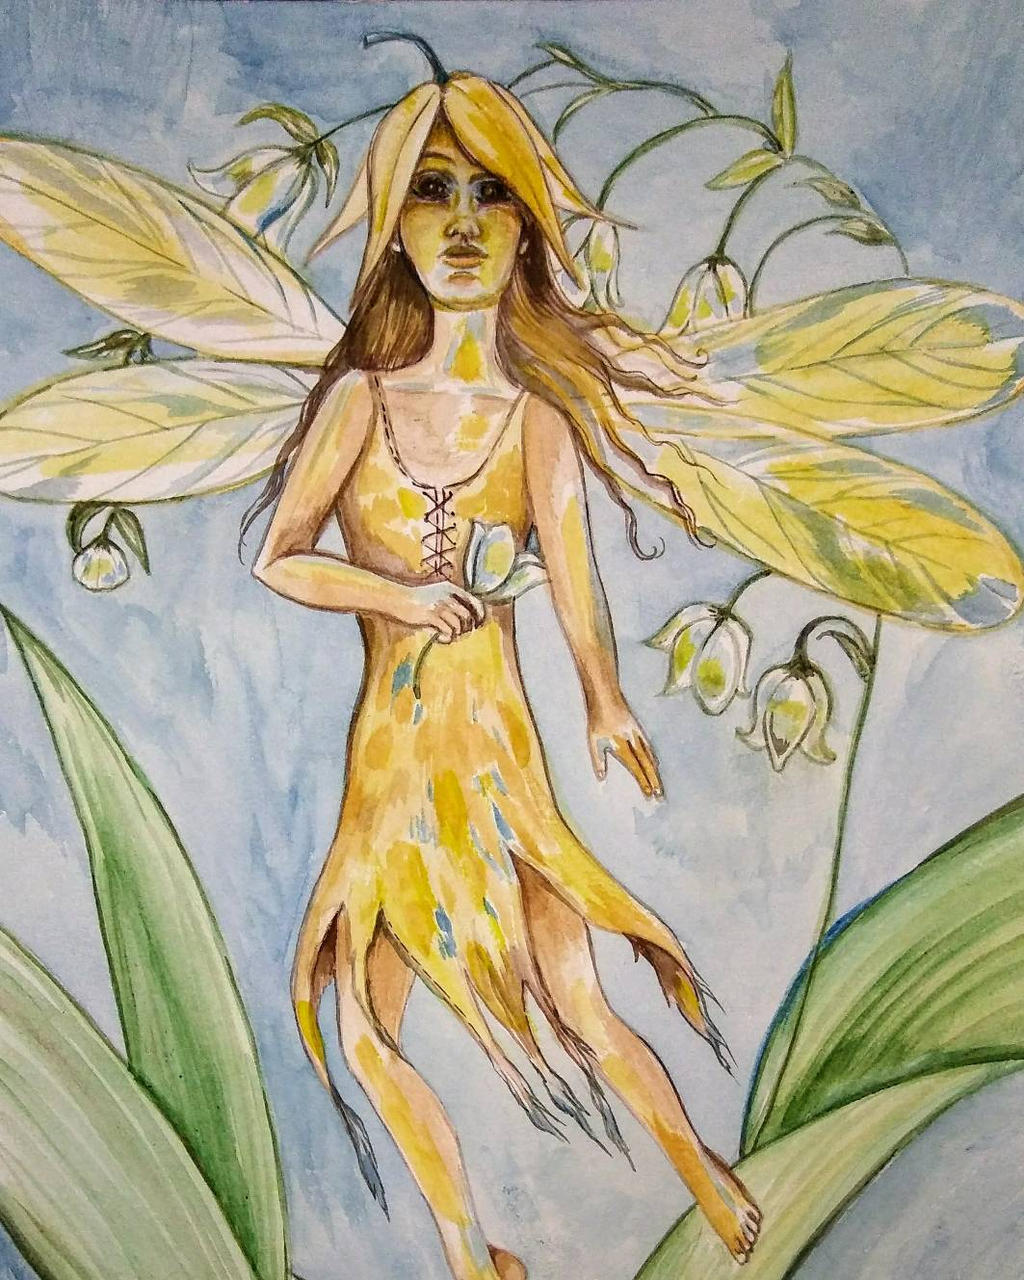 Lily Of The Valley Fairy By Pattyarnold On DeviantArt